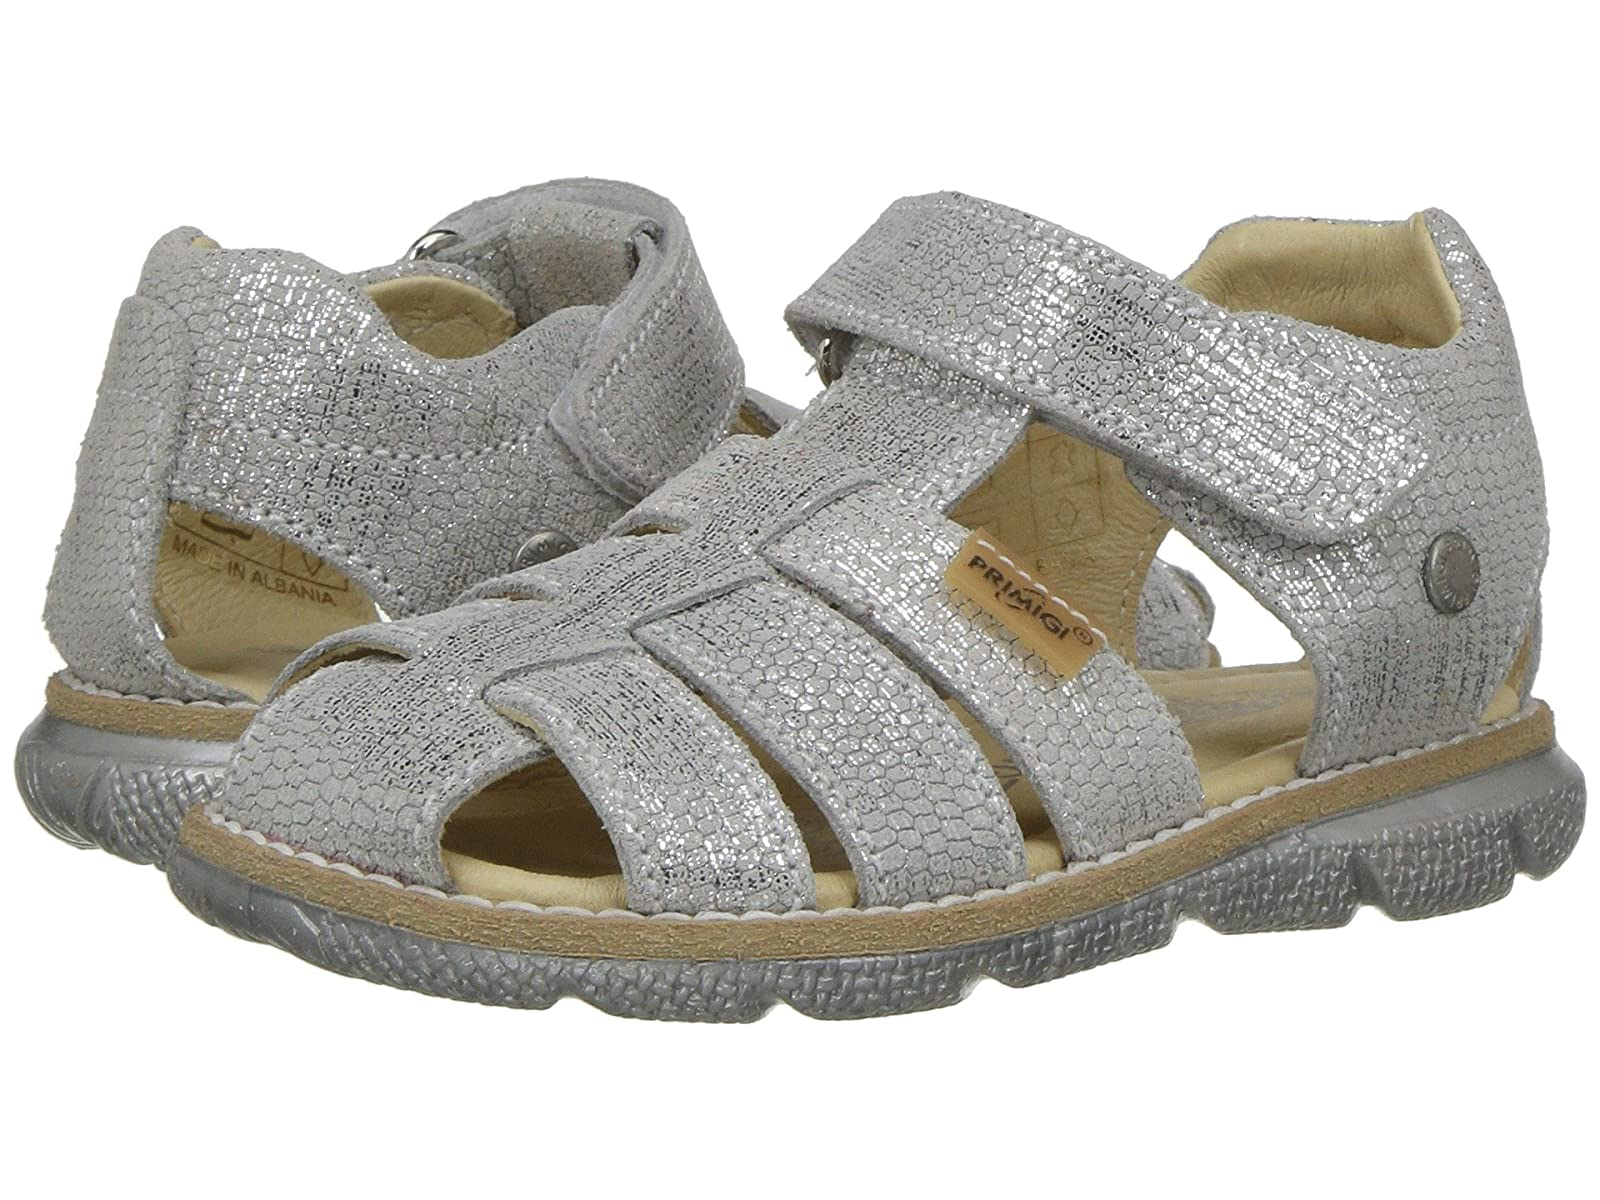 Primigi Kids PPD 14125 (Toddler/Little Kid)Cheap and distinctive eye-catching shoes